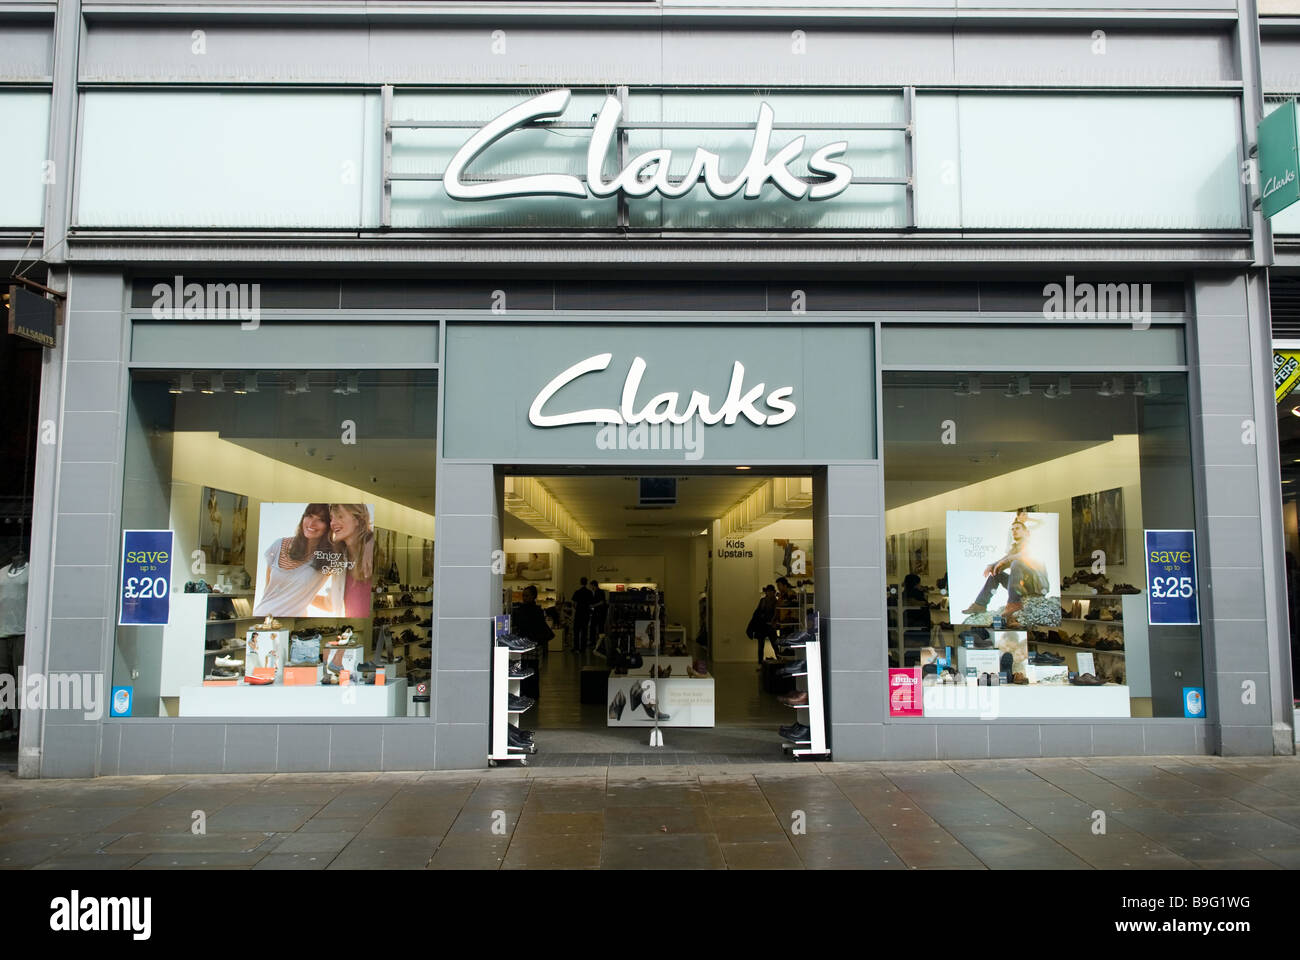 d0132329a Clarks Shoes store front on Market street Manchester city centre UK - Stock  Image